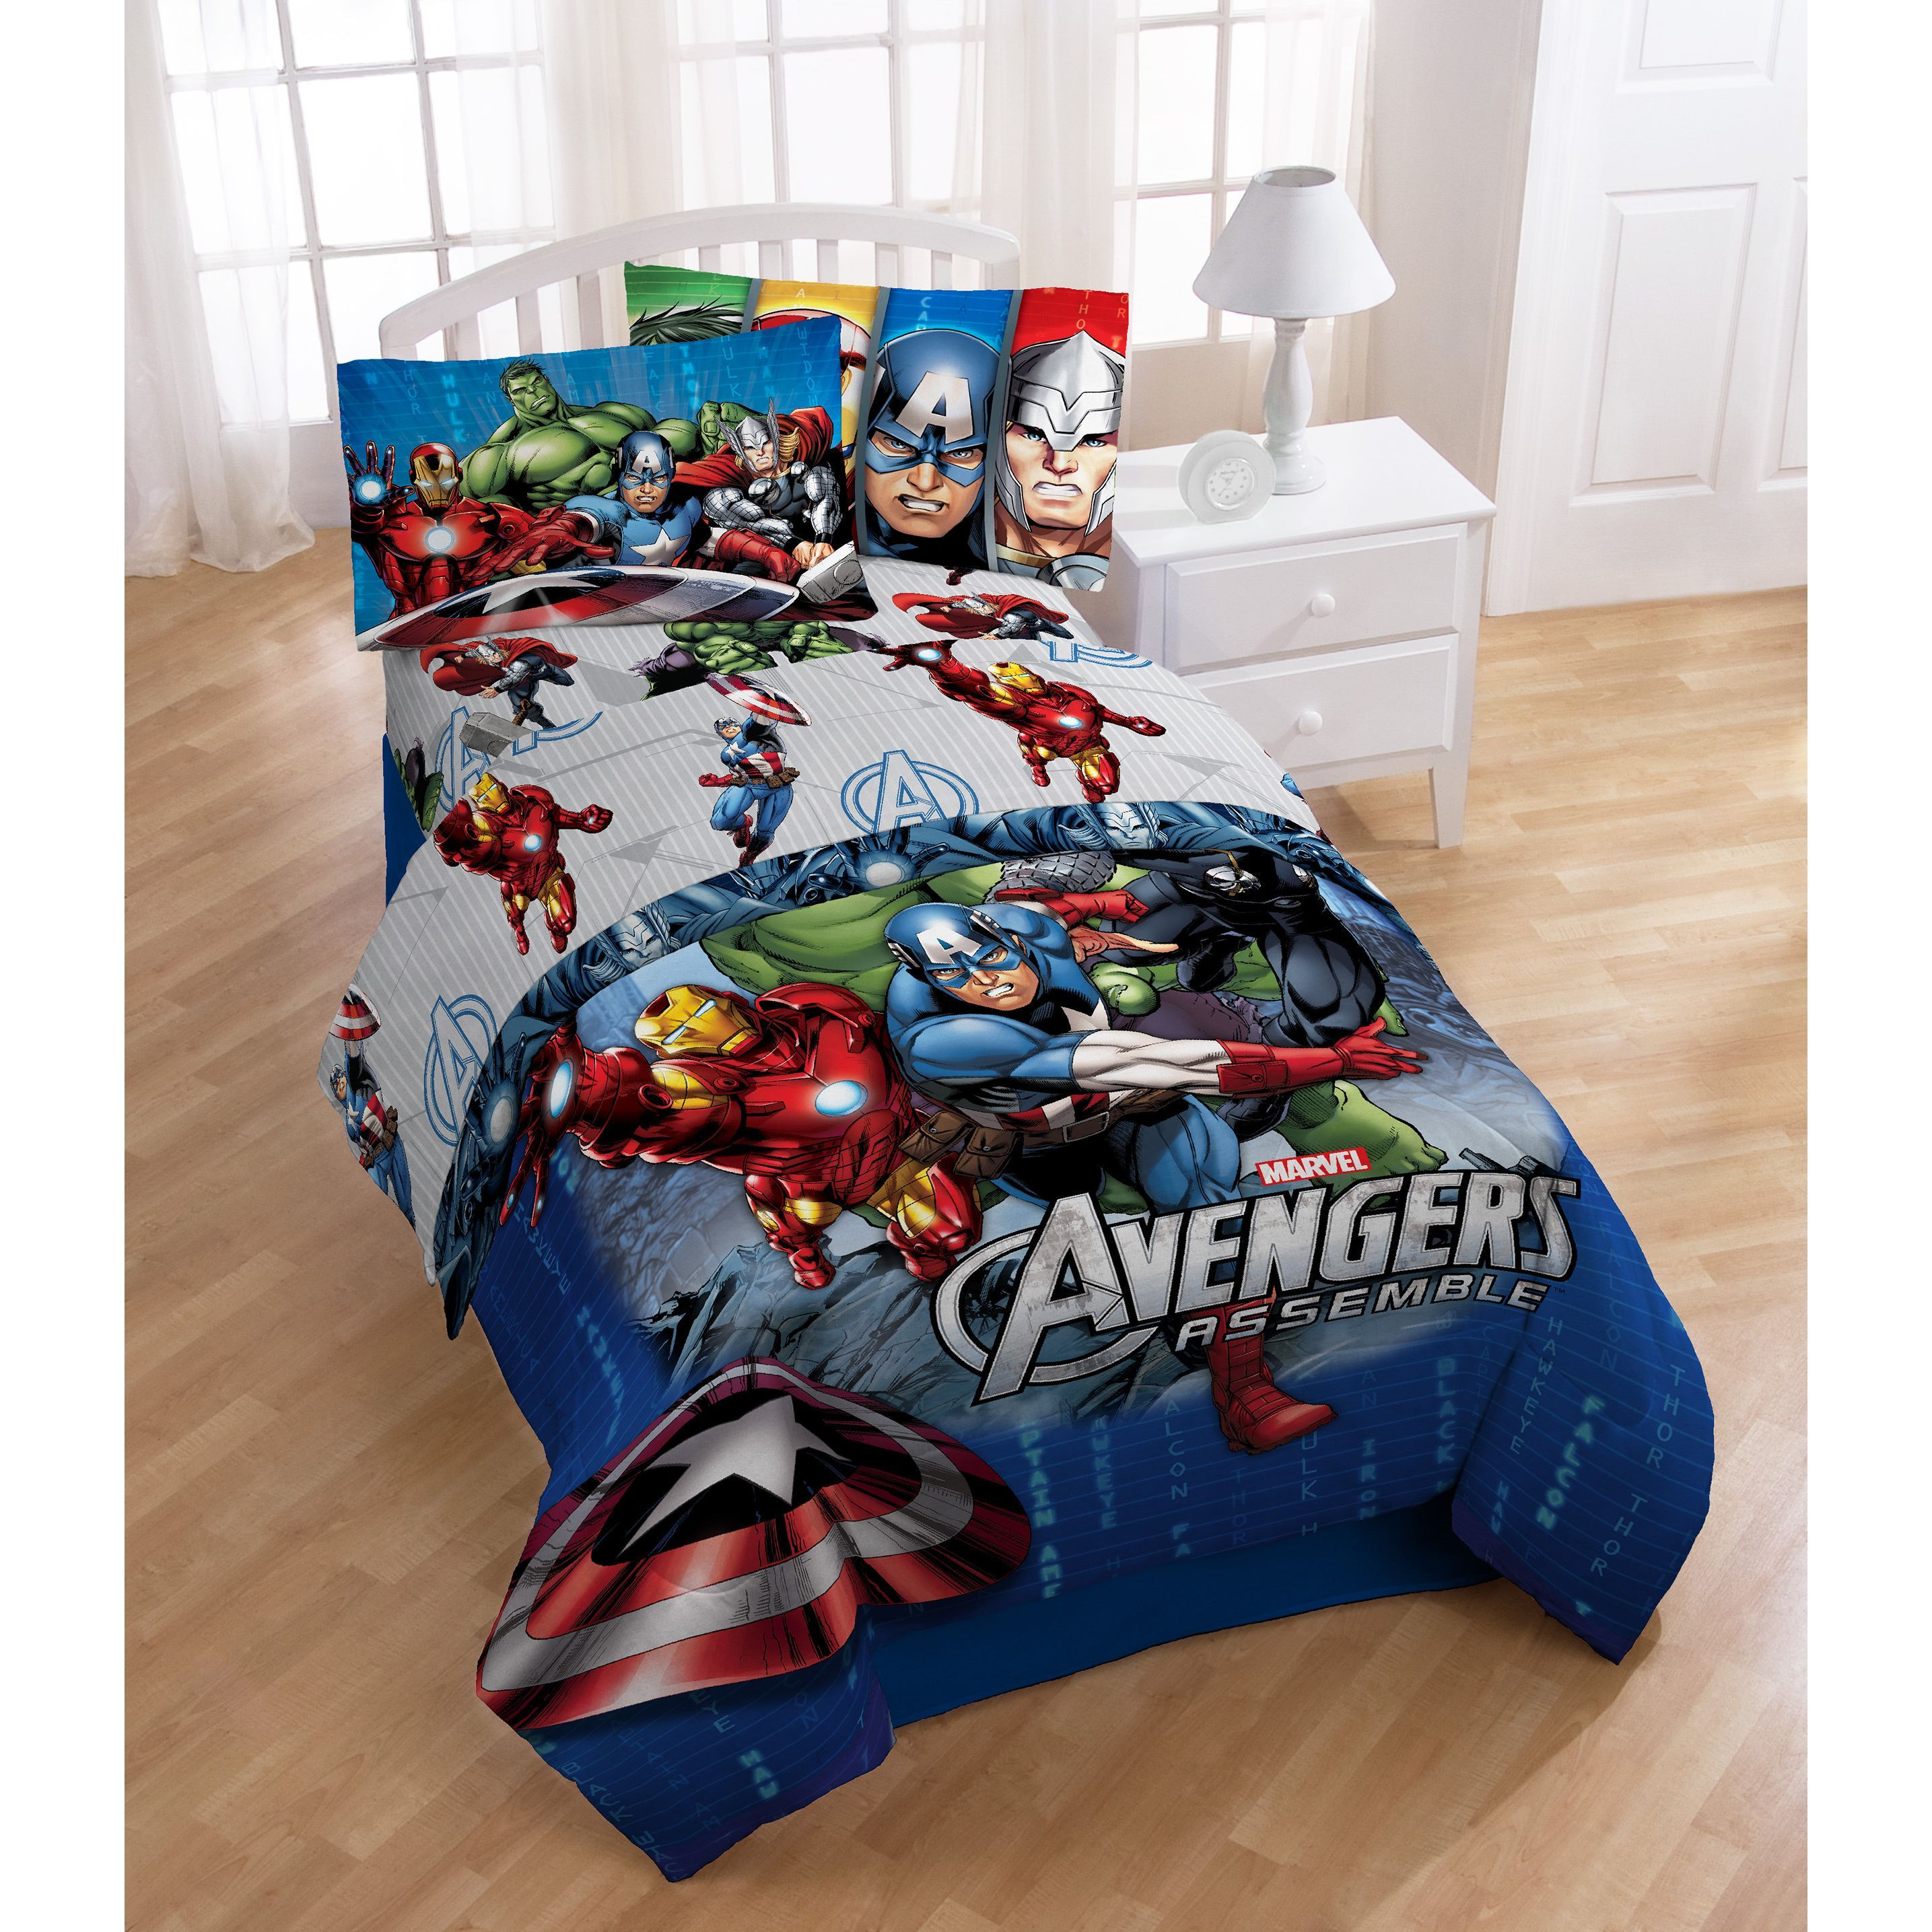 Avengers bedding set twin - Marvel Avengers Halo Twin 4 Piece Bed In A Bag Set By Marvel